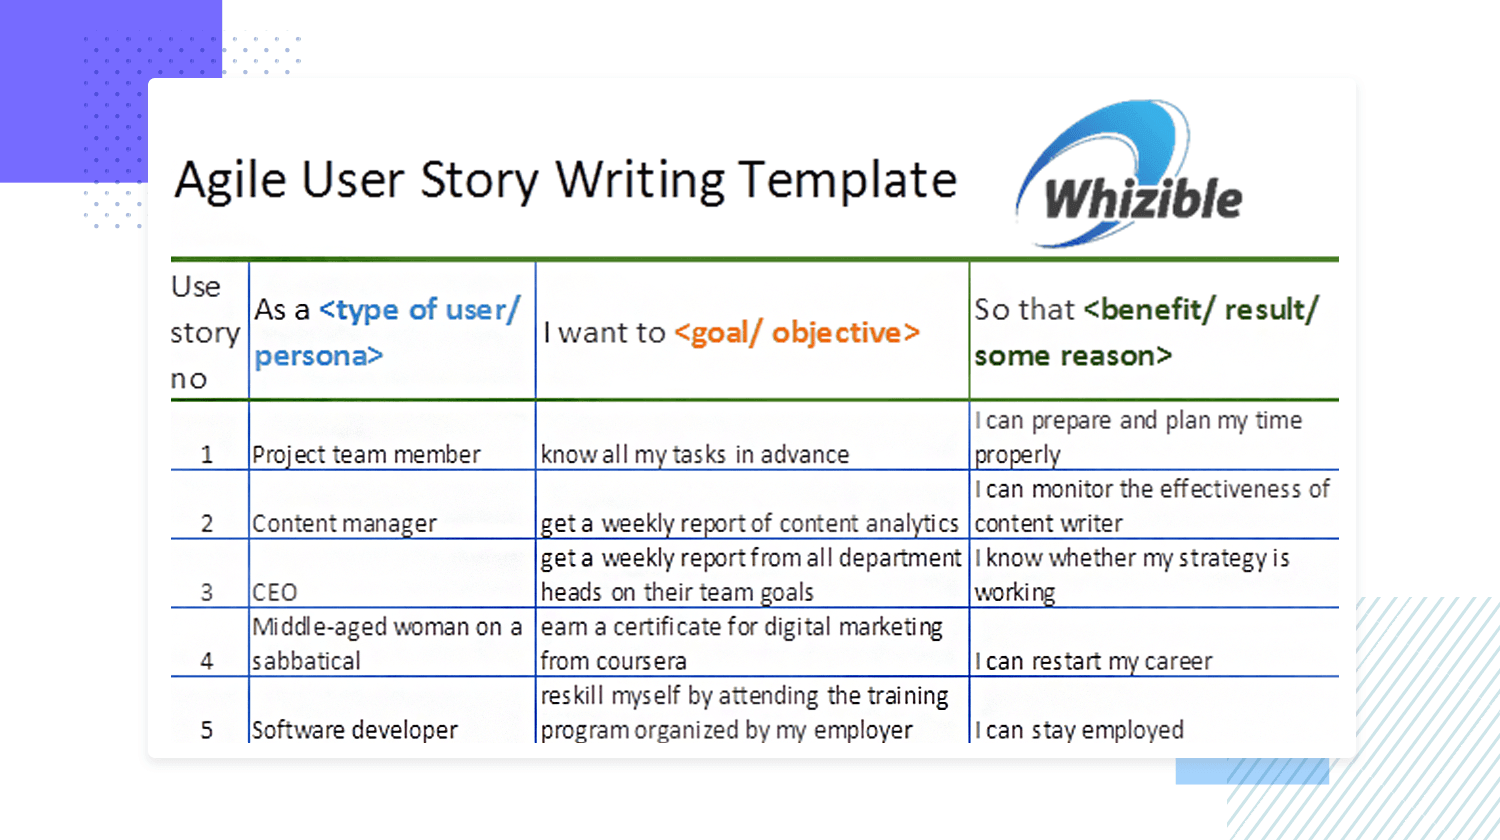 User story examples - agile template from Whizible